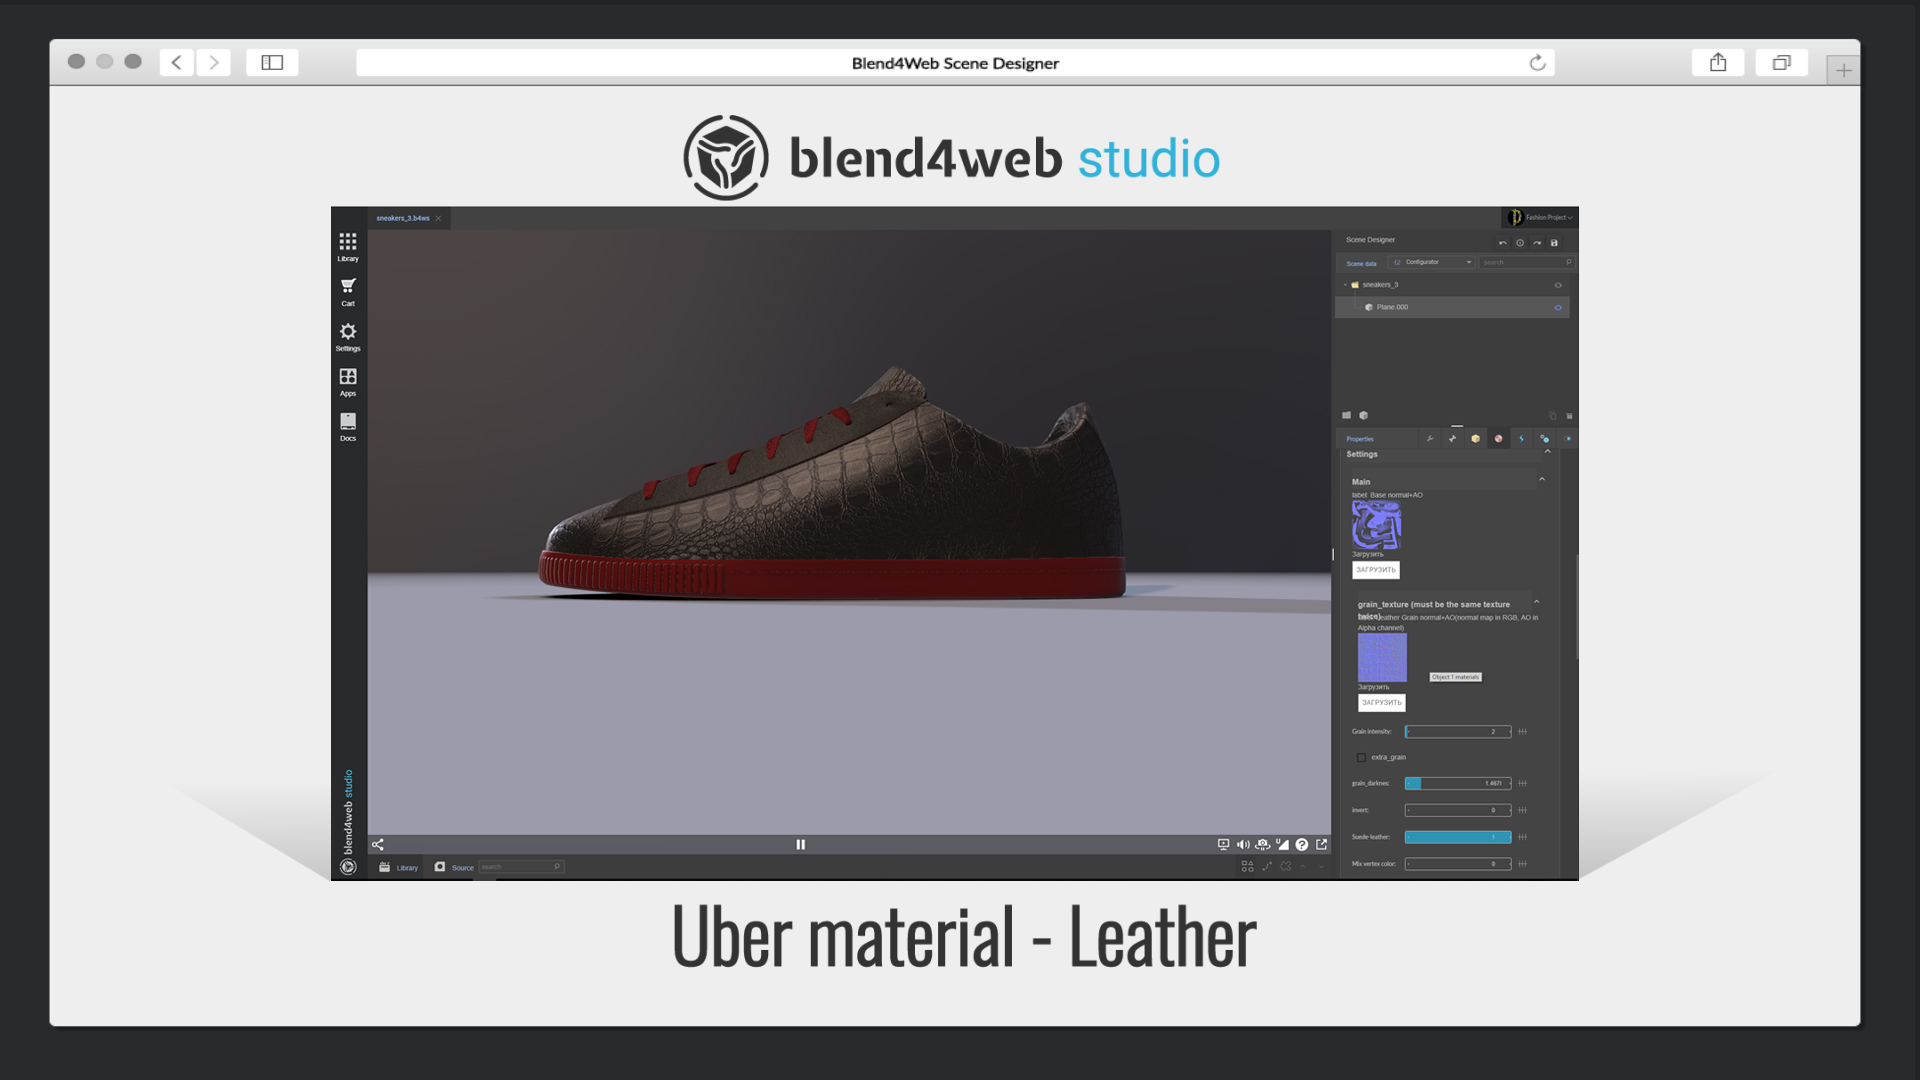 Blend4Web Studio: Uber material - Leather (patent leather, nubuck, suede, prints)